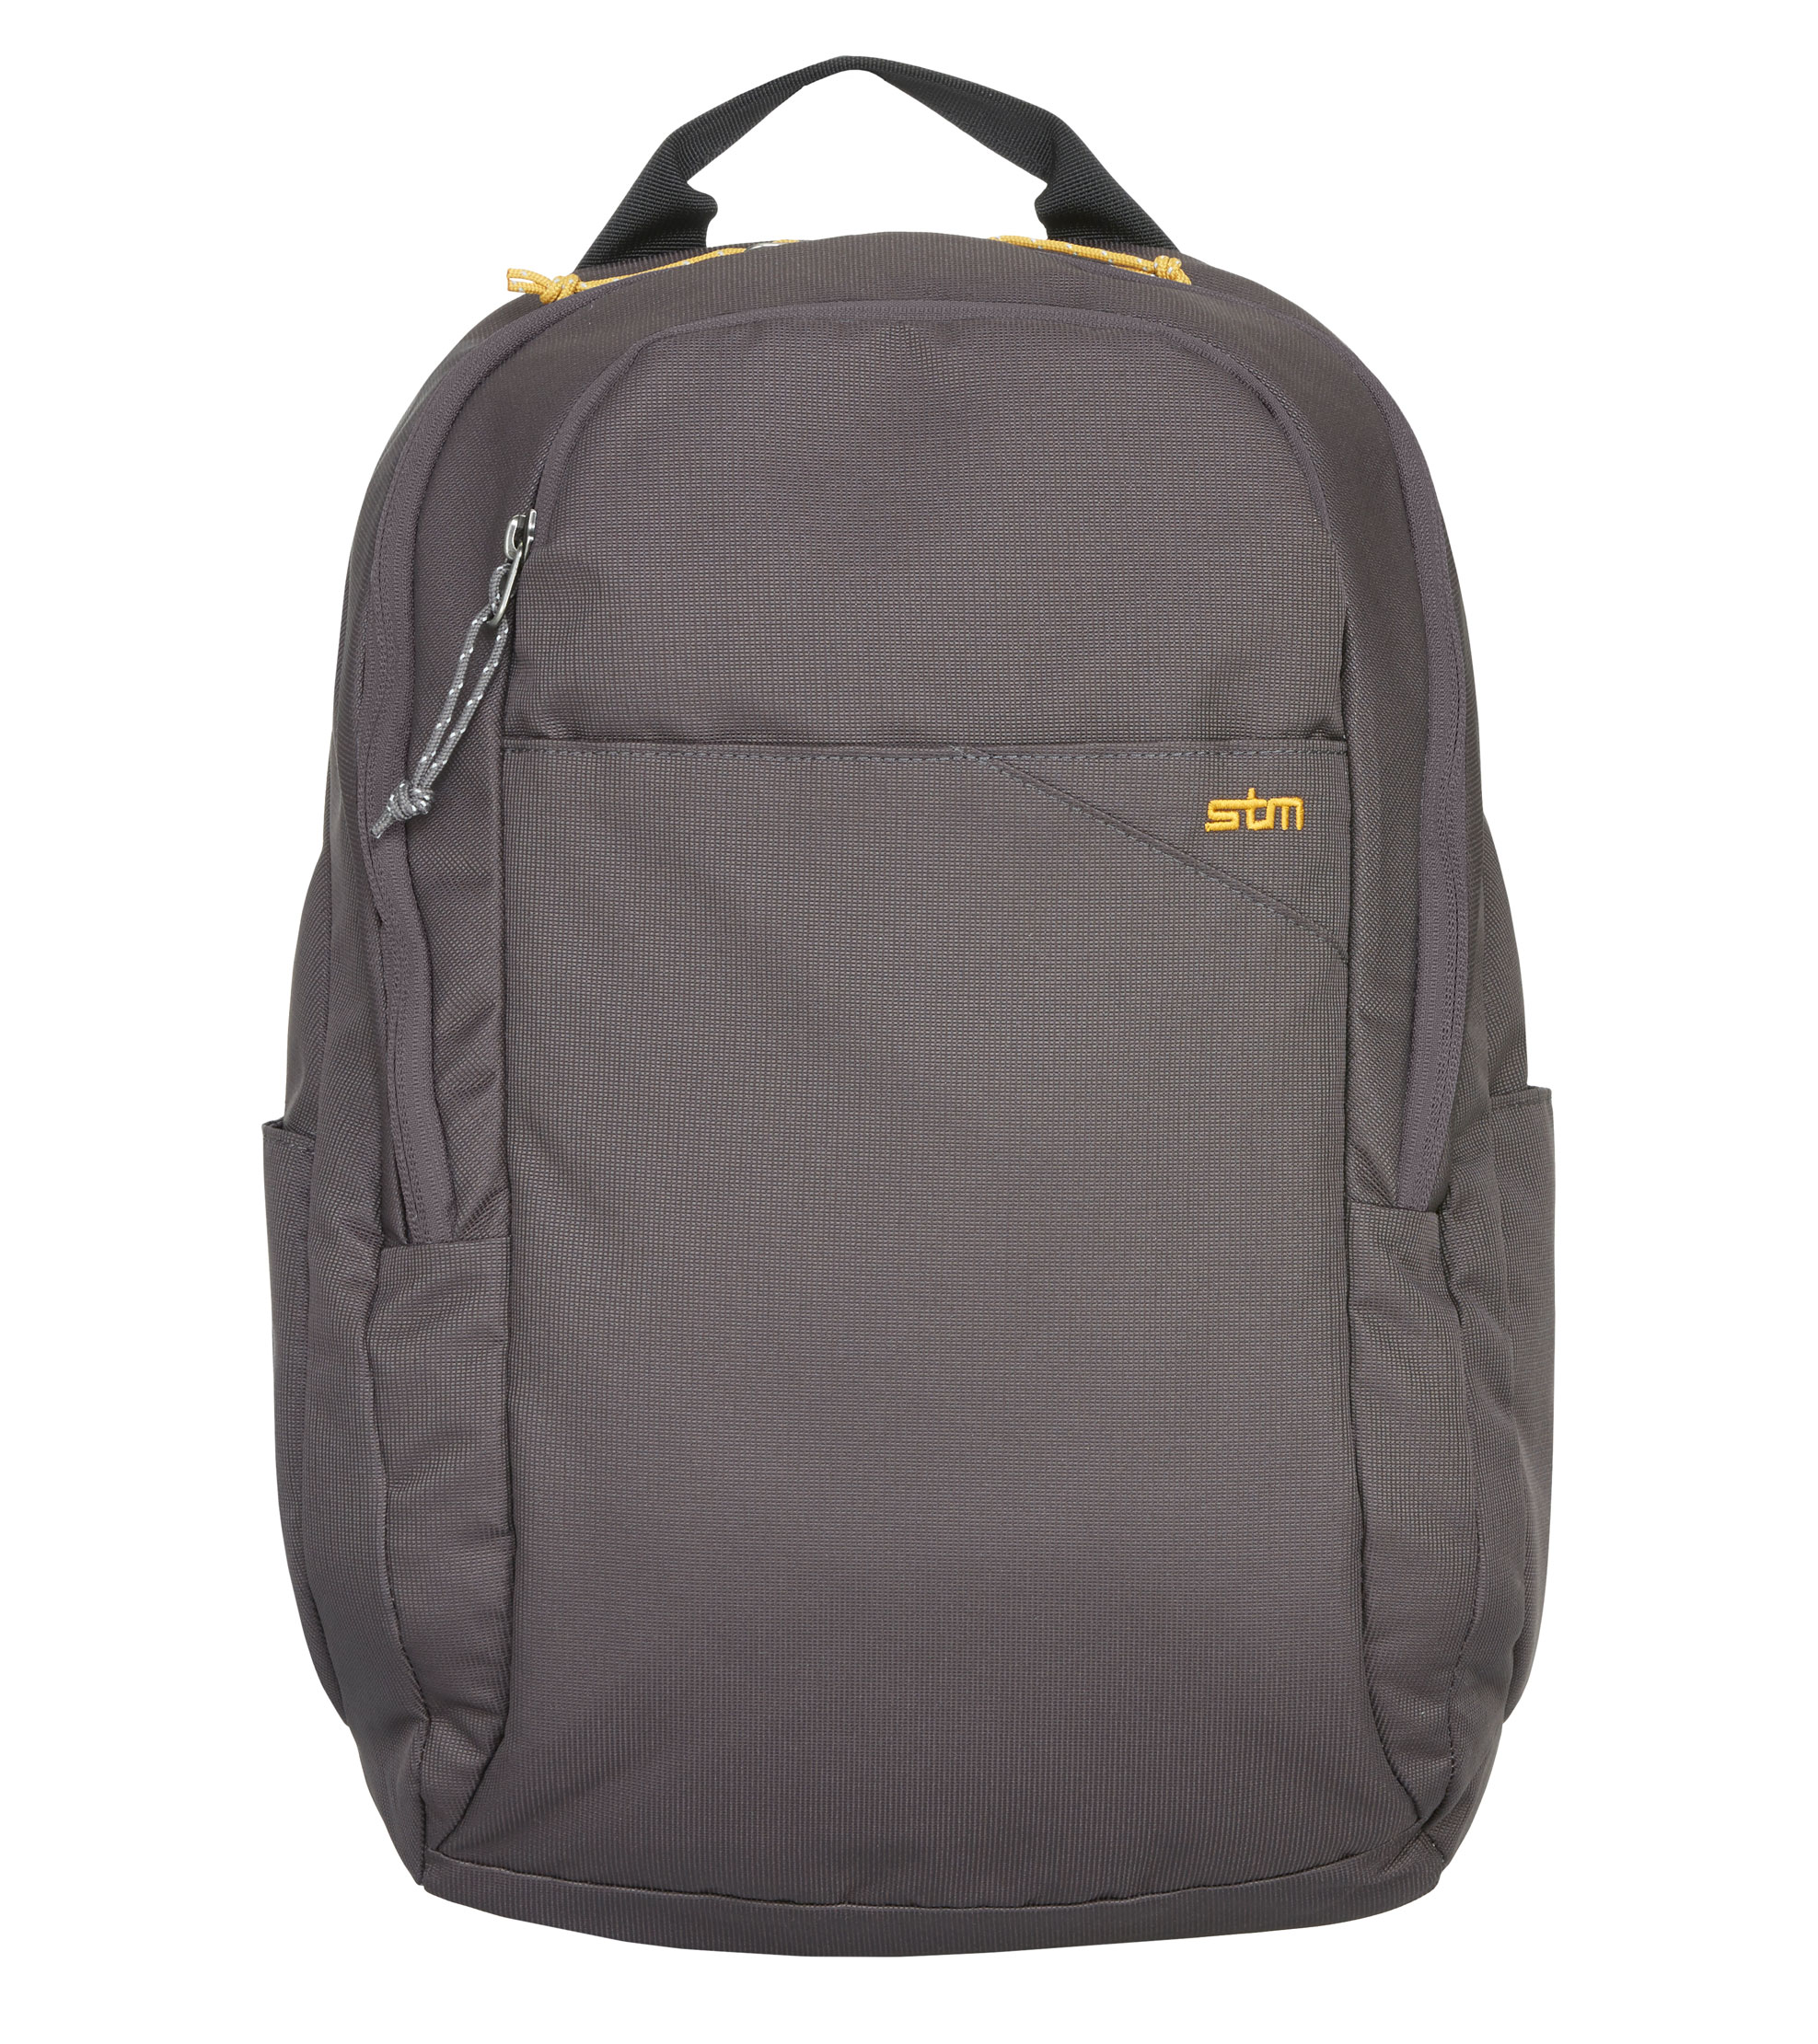 "STM Prime 13"" Laptop Backpack תיק גב"